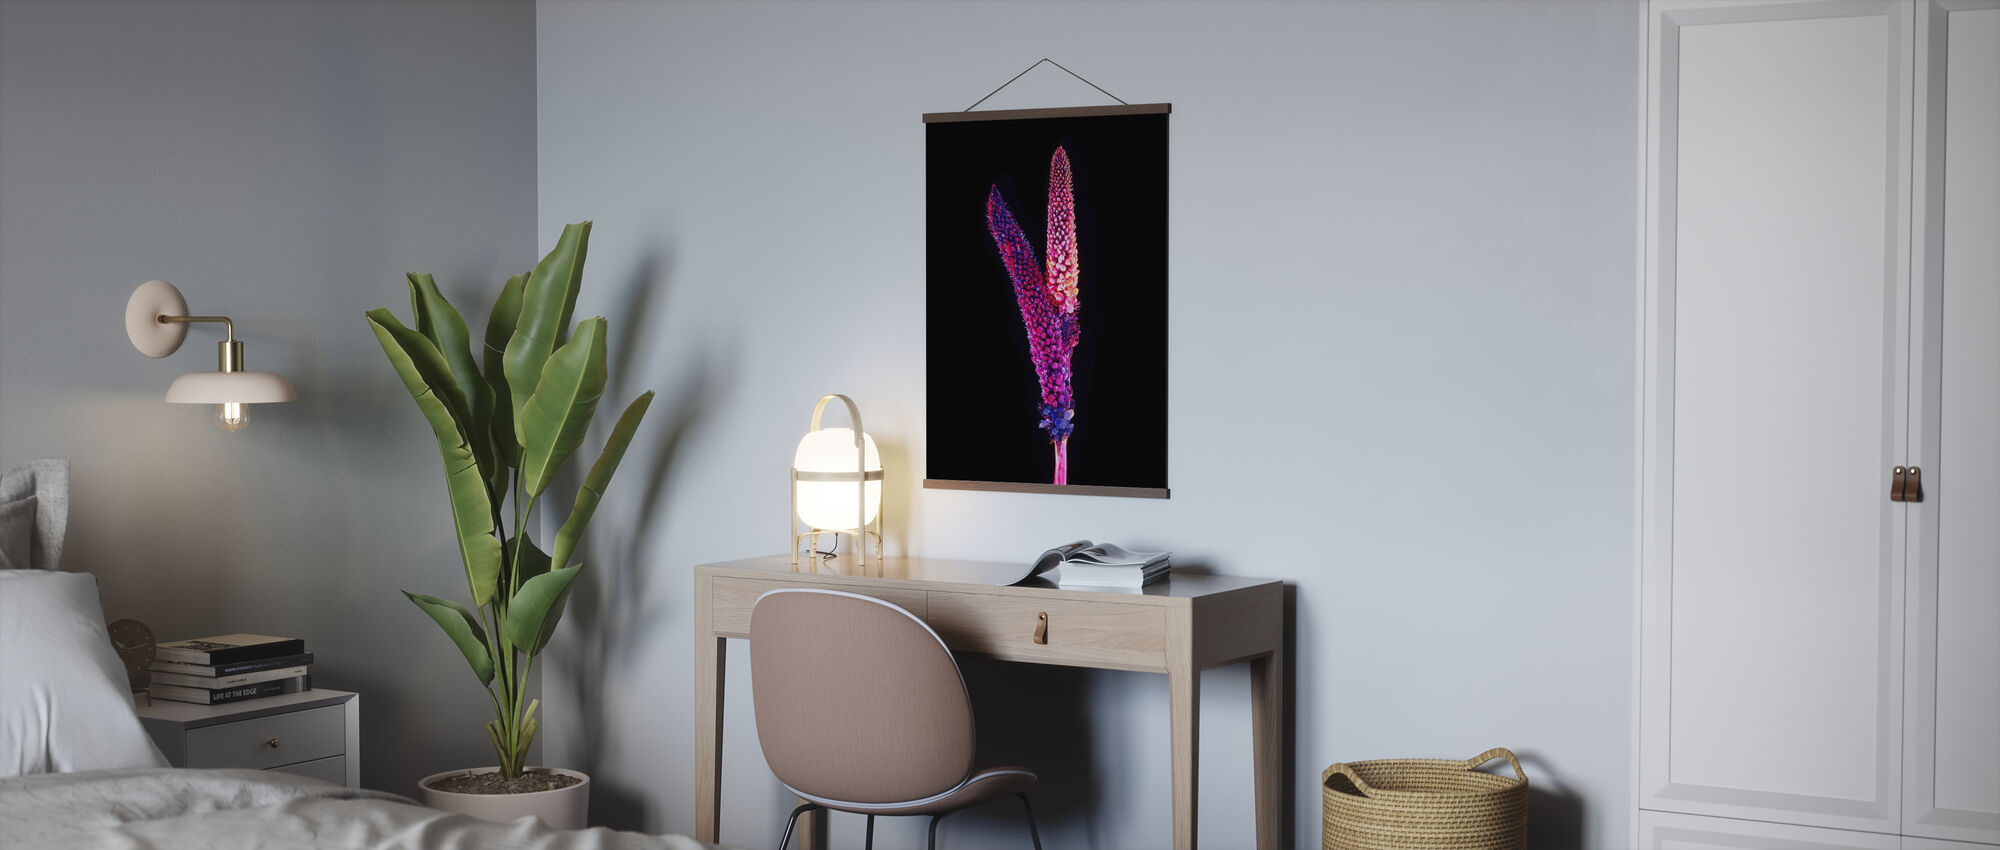 Neon - Poster - Office